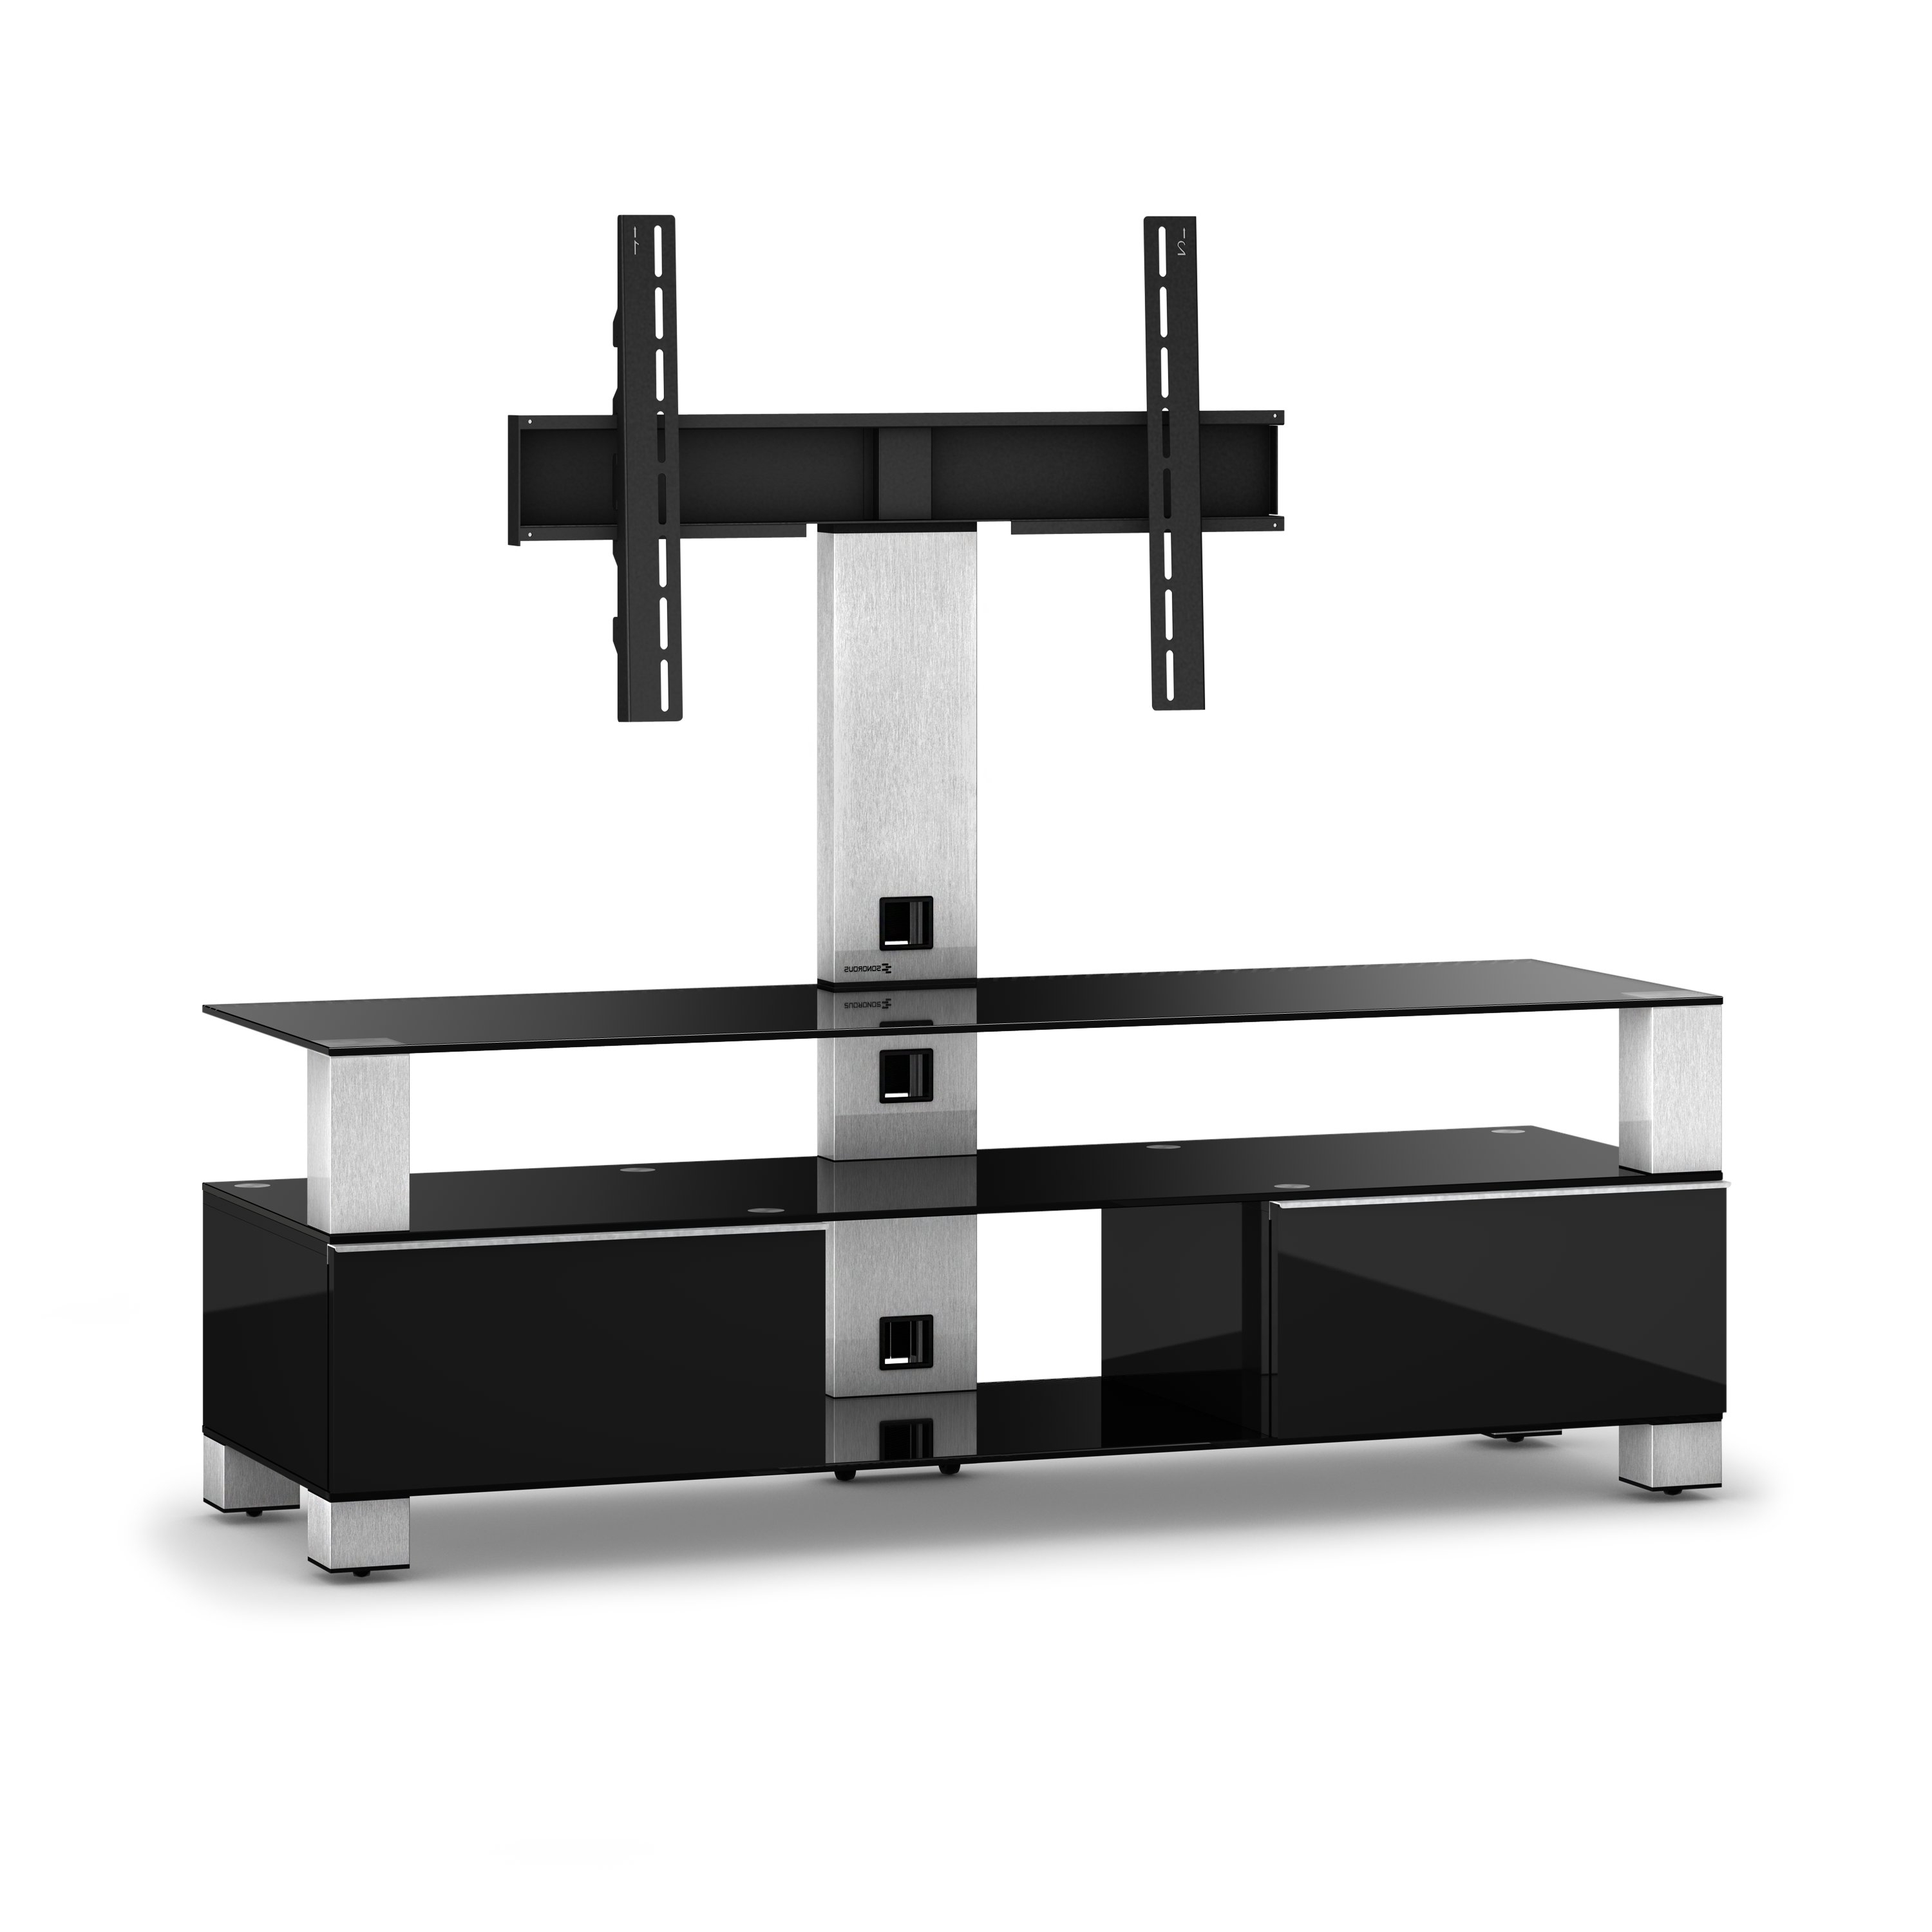 Fashionable Connected Essentials Ltd Cantilever Tv Stand For Tvs Up To 60 For Cantilever Glass Tv Stands (View 10 of 20)